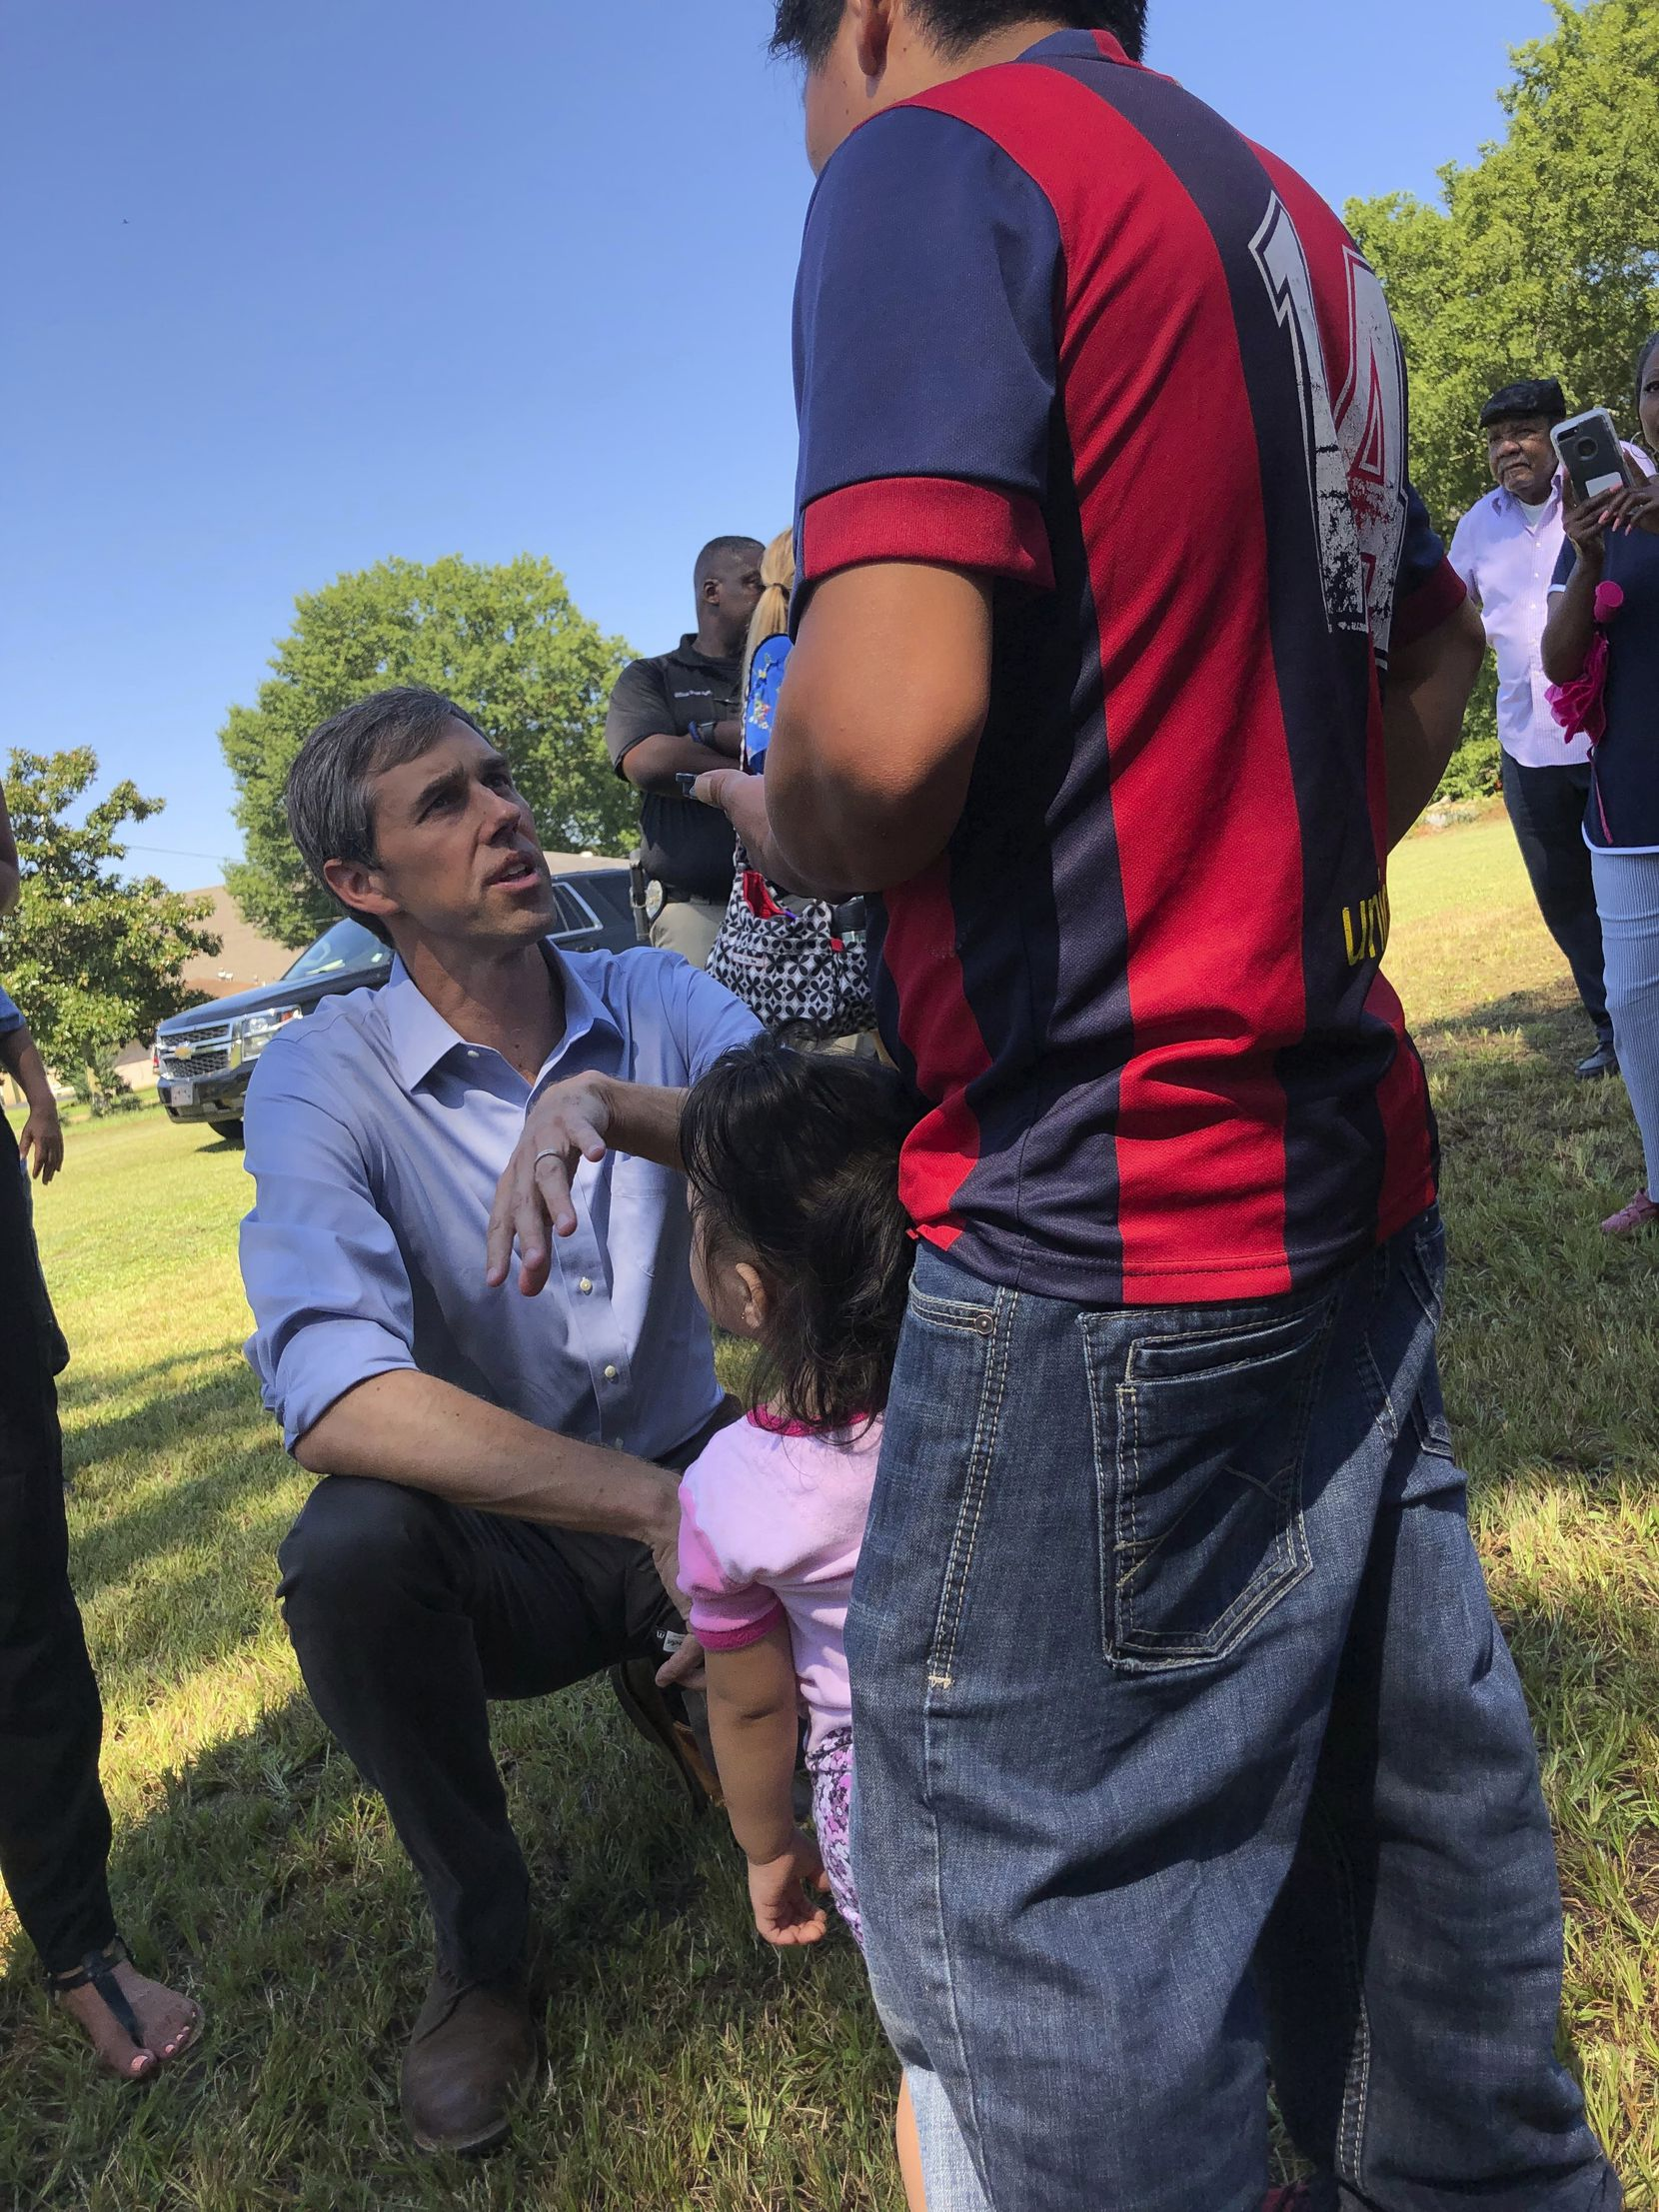 Presidential candidate Beto O'Rourke speaks in Spanish to Guatemalan immigrant Agusto Lopez Coronado in Canton, Miss., on Friday, Aug. 16, 2019. Coronado initially declined to give his name to journalists because of fears of repercussions days after the immigration raids at chicken processing plants in Mississippi. Coronado later identified himself in an interview, saying his wife was arrested in an immigration raid Aug. 7, 2019, while she was working at a chicken processing plant in Canton and she is jailed in Louisiana while he remains in Canton caring for their three children.